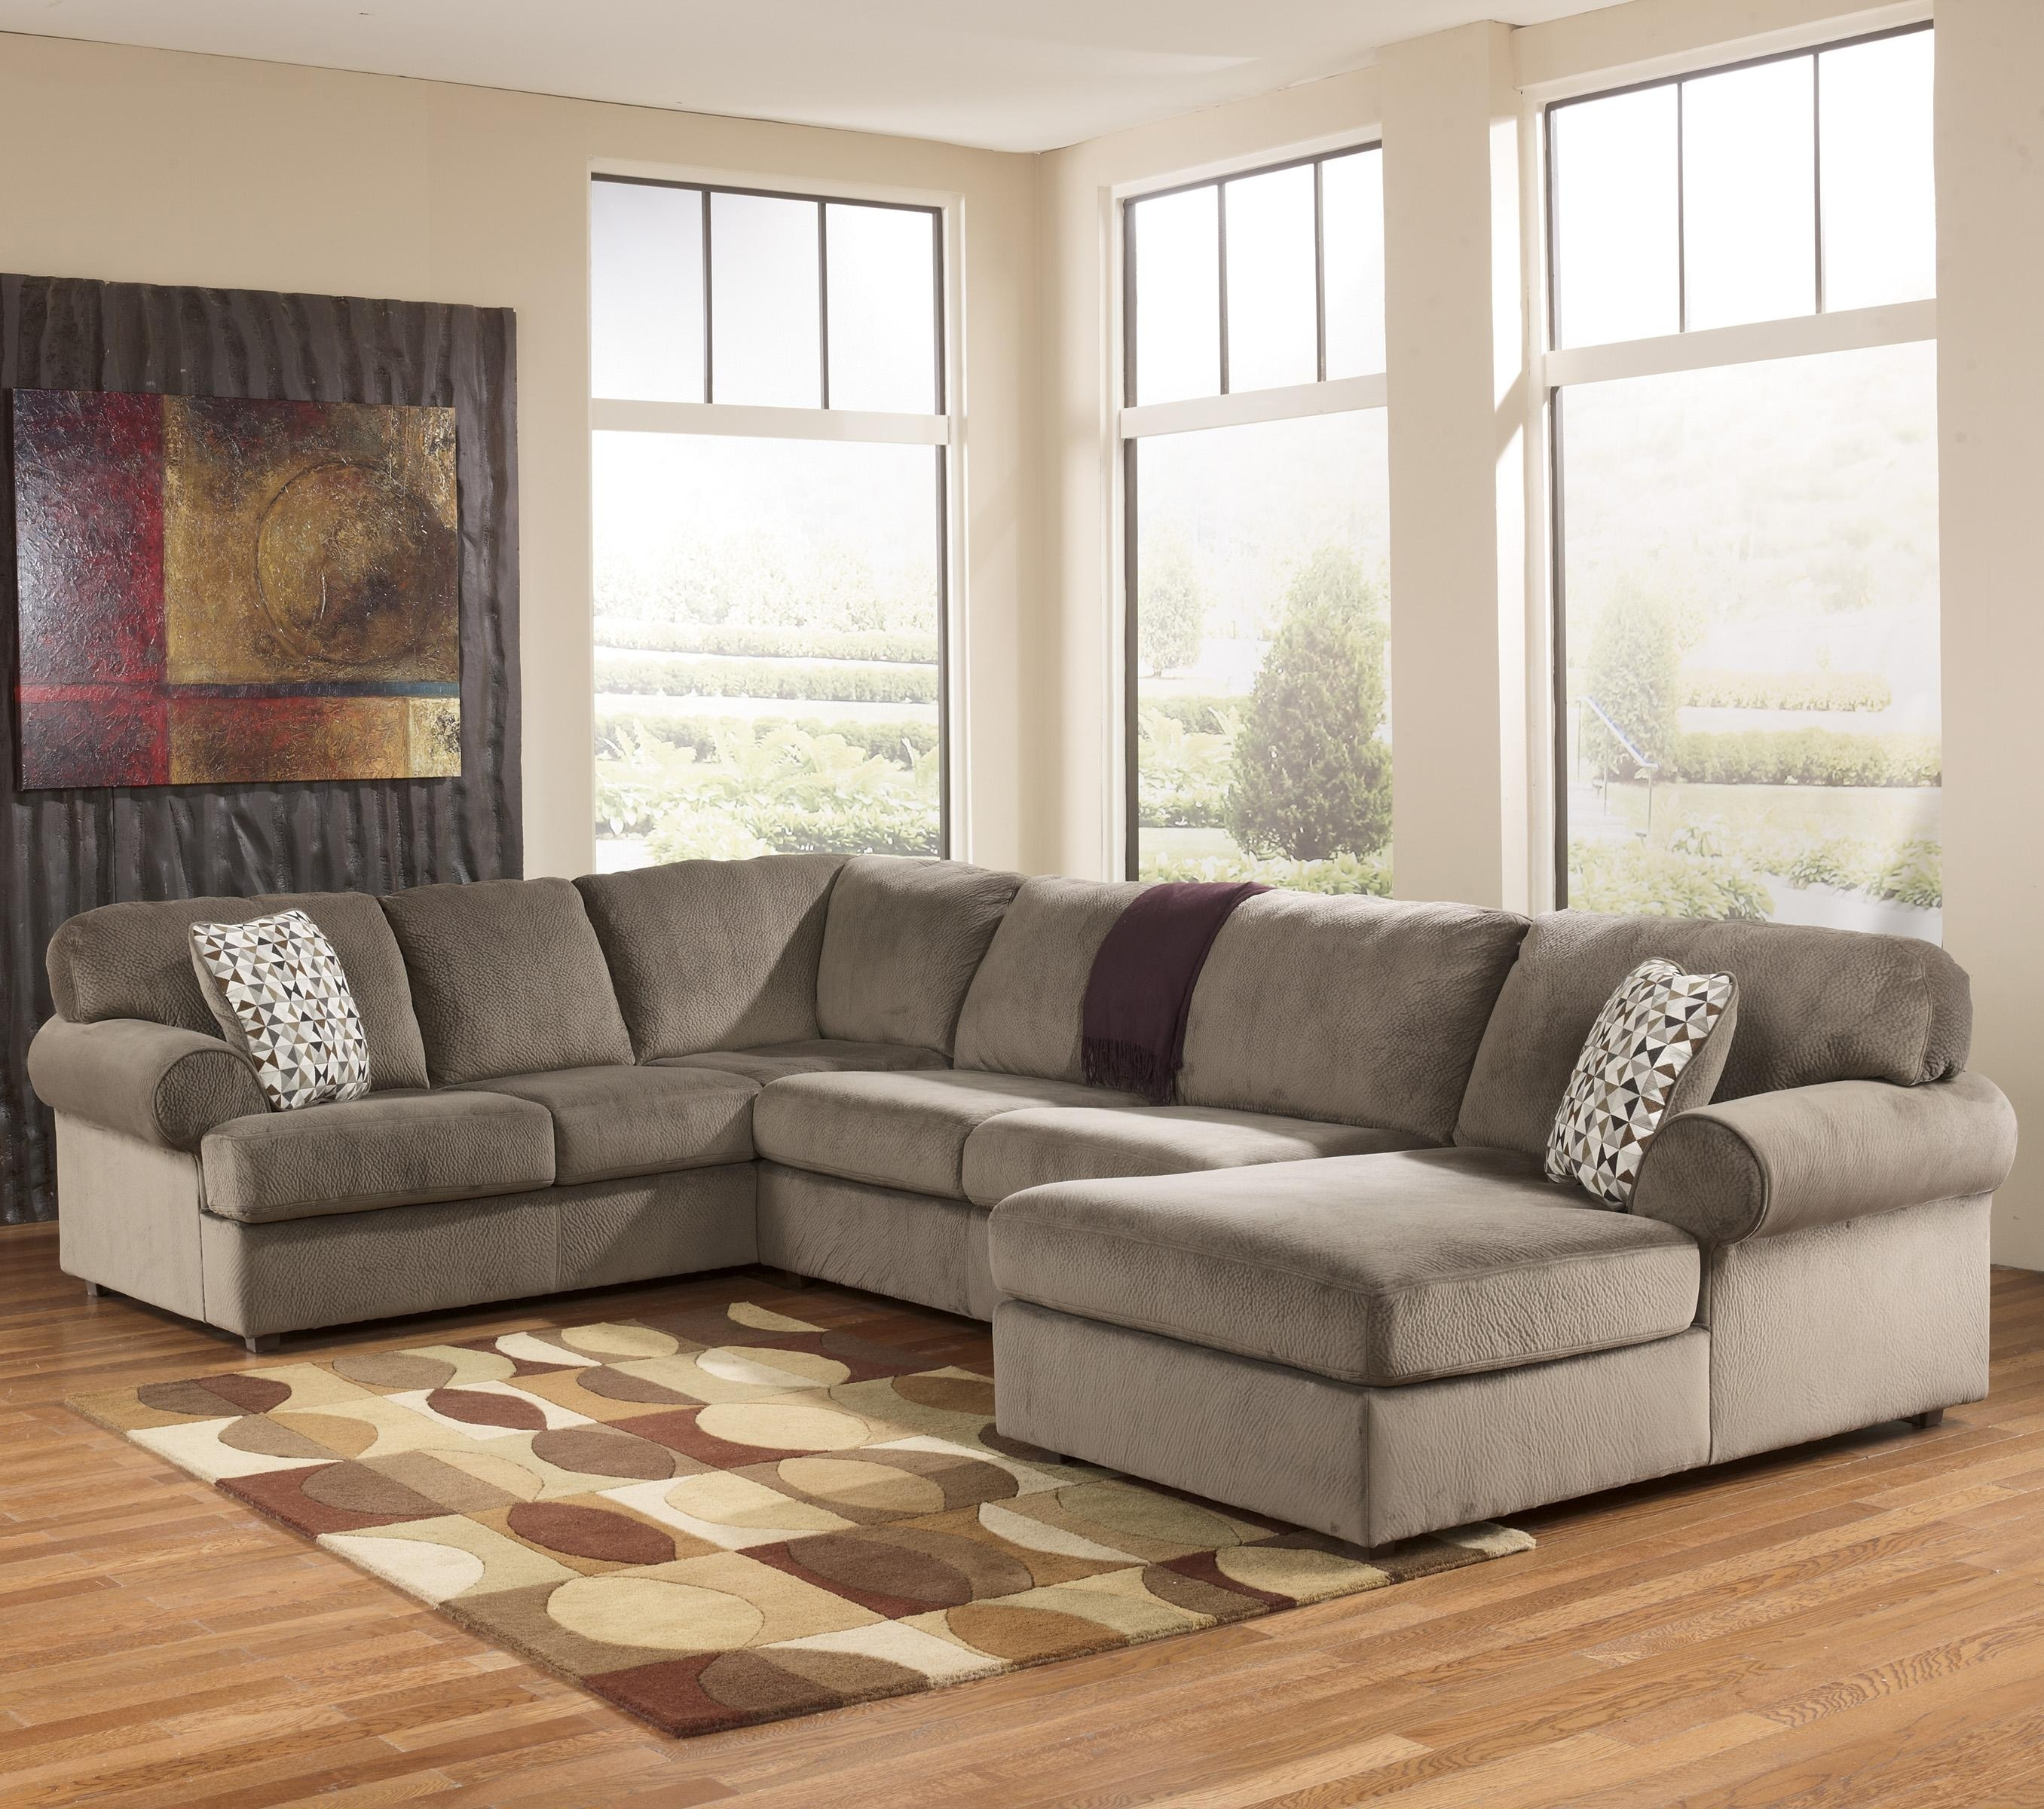 Signature Designashley Jessa Place – Dune Casual Sectional Sofa Pertaining To Killeen Tx Sectional Sofas (View 7 of 10)